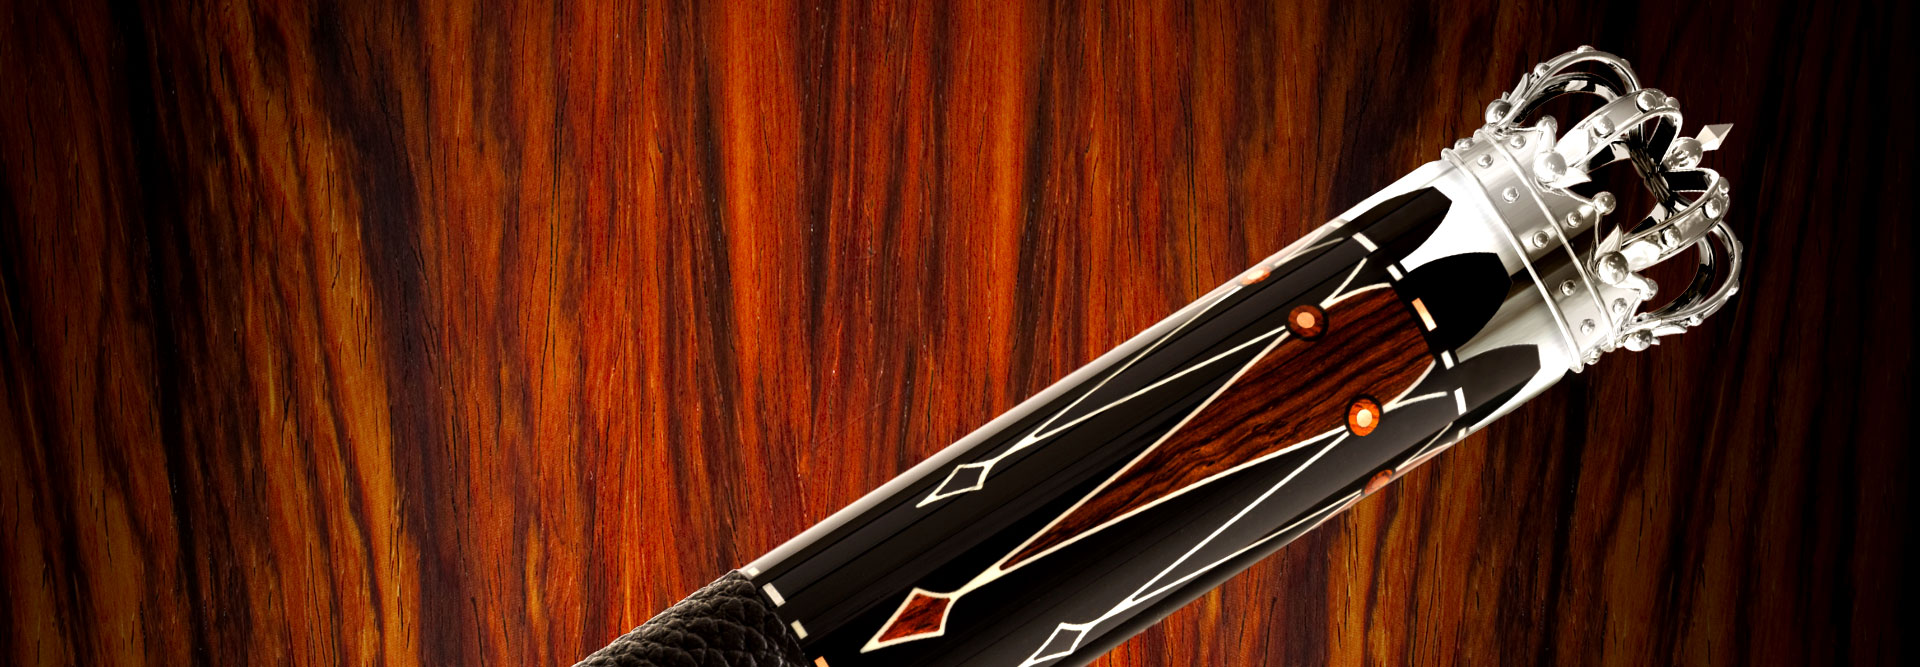 Predator Throne Pool cues